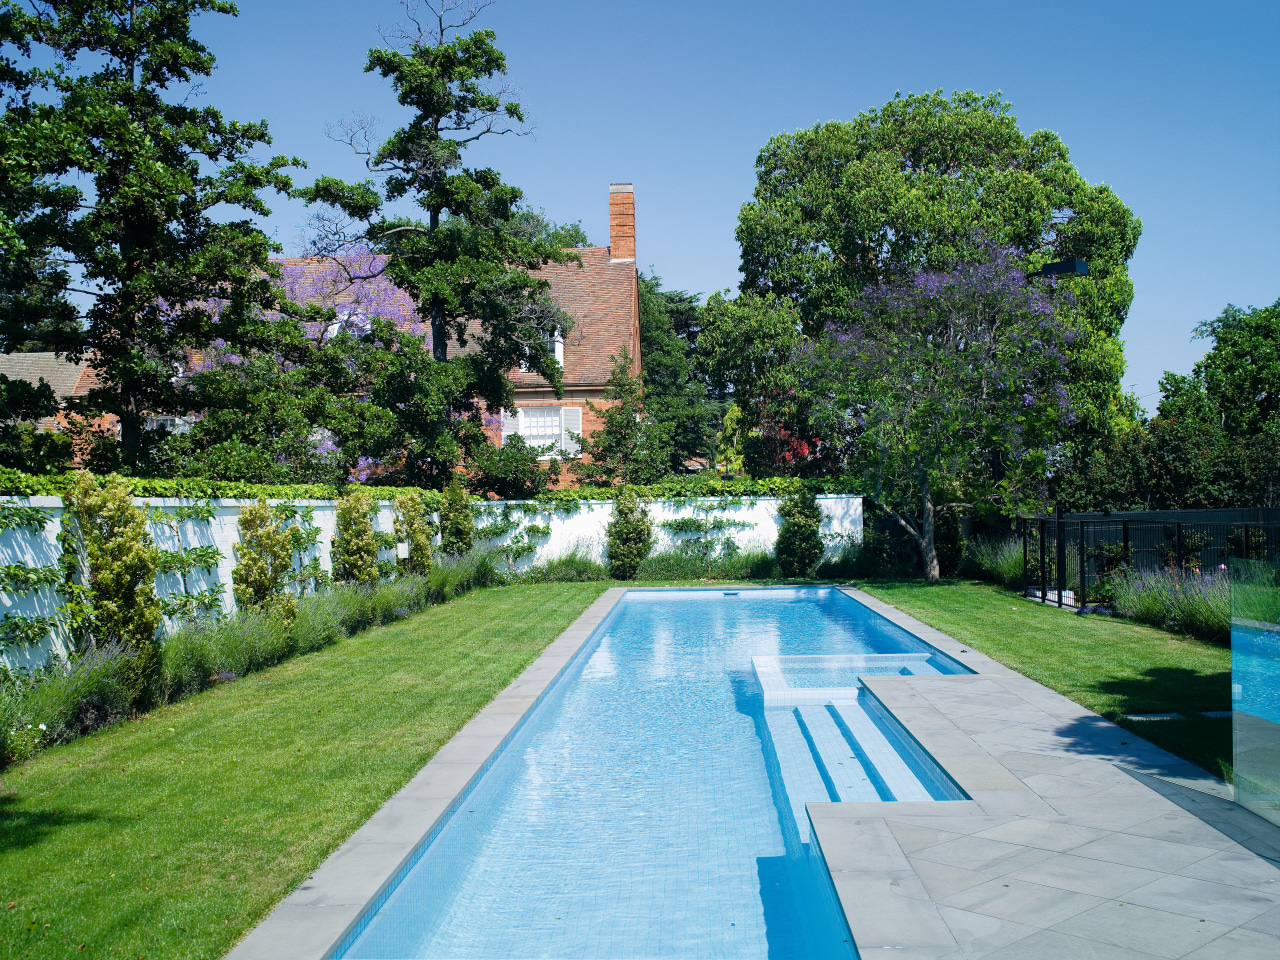 View of the long Pool that features perimeter daytime, estate, garden, leisure, mansion, plant, property, real estate, reflecting pool, reflection, sky, swimming pool, tree, water, waterway, green, teal